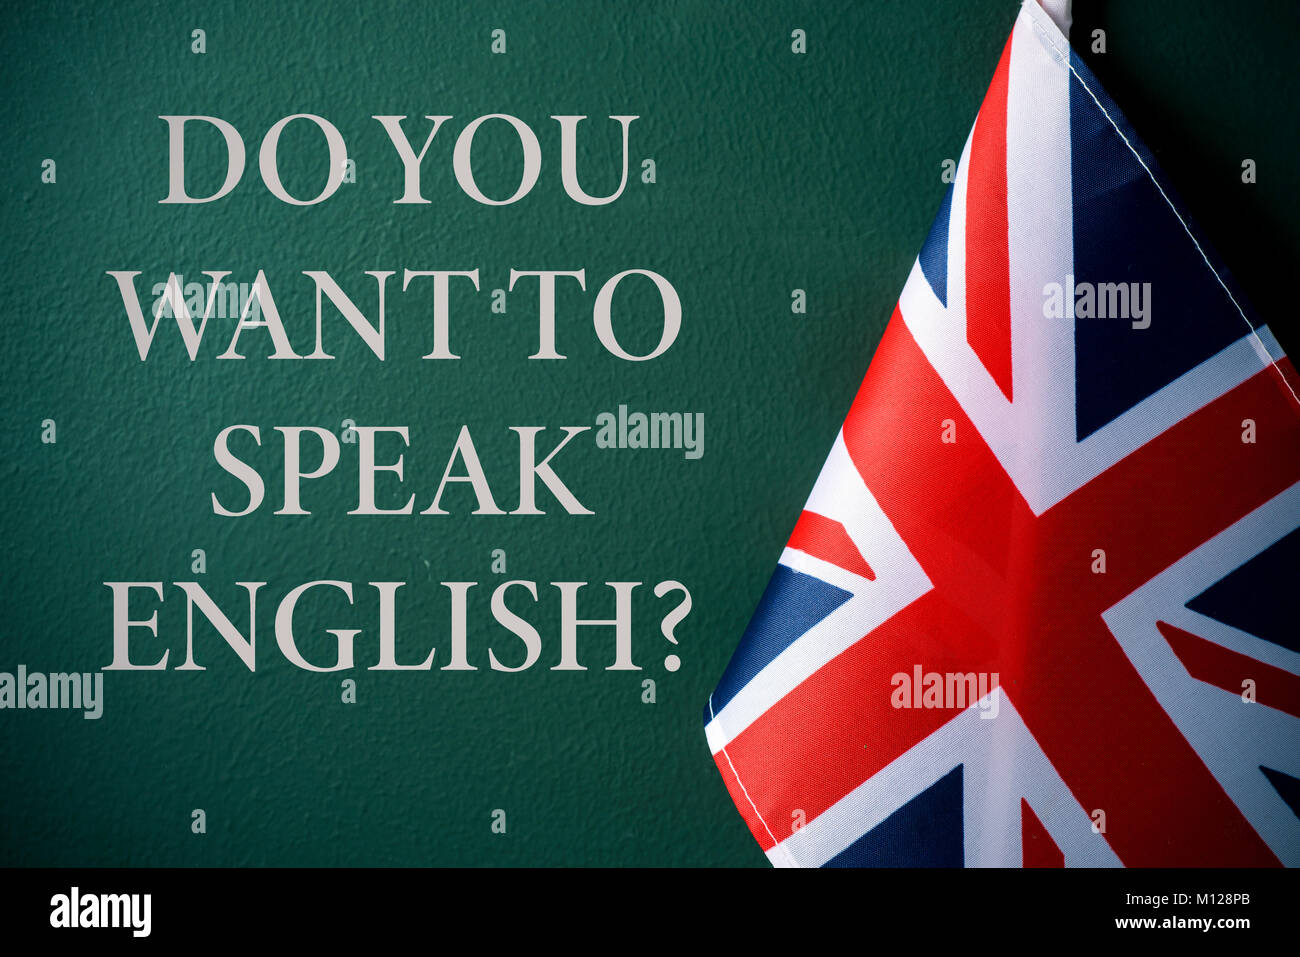 a flag of the United Kingdom and the question do you want to speak English? against a dark green background Stock Photo